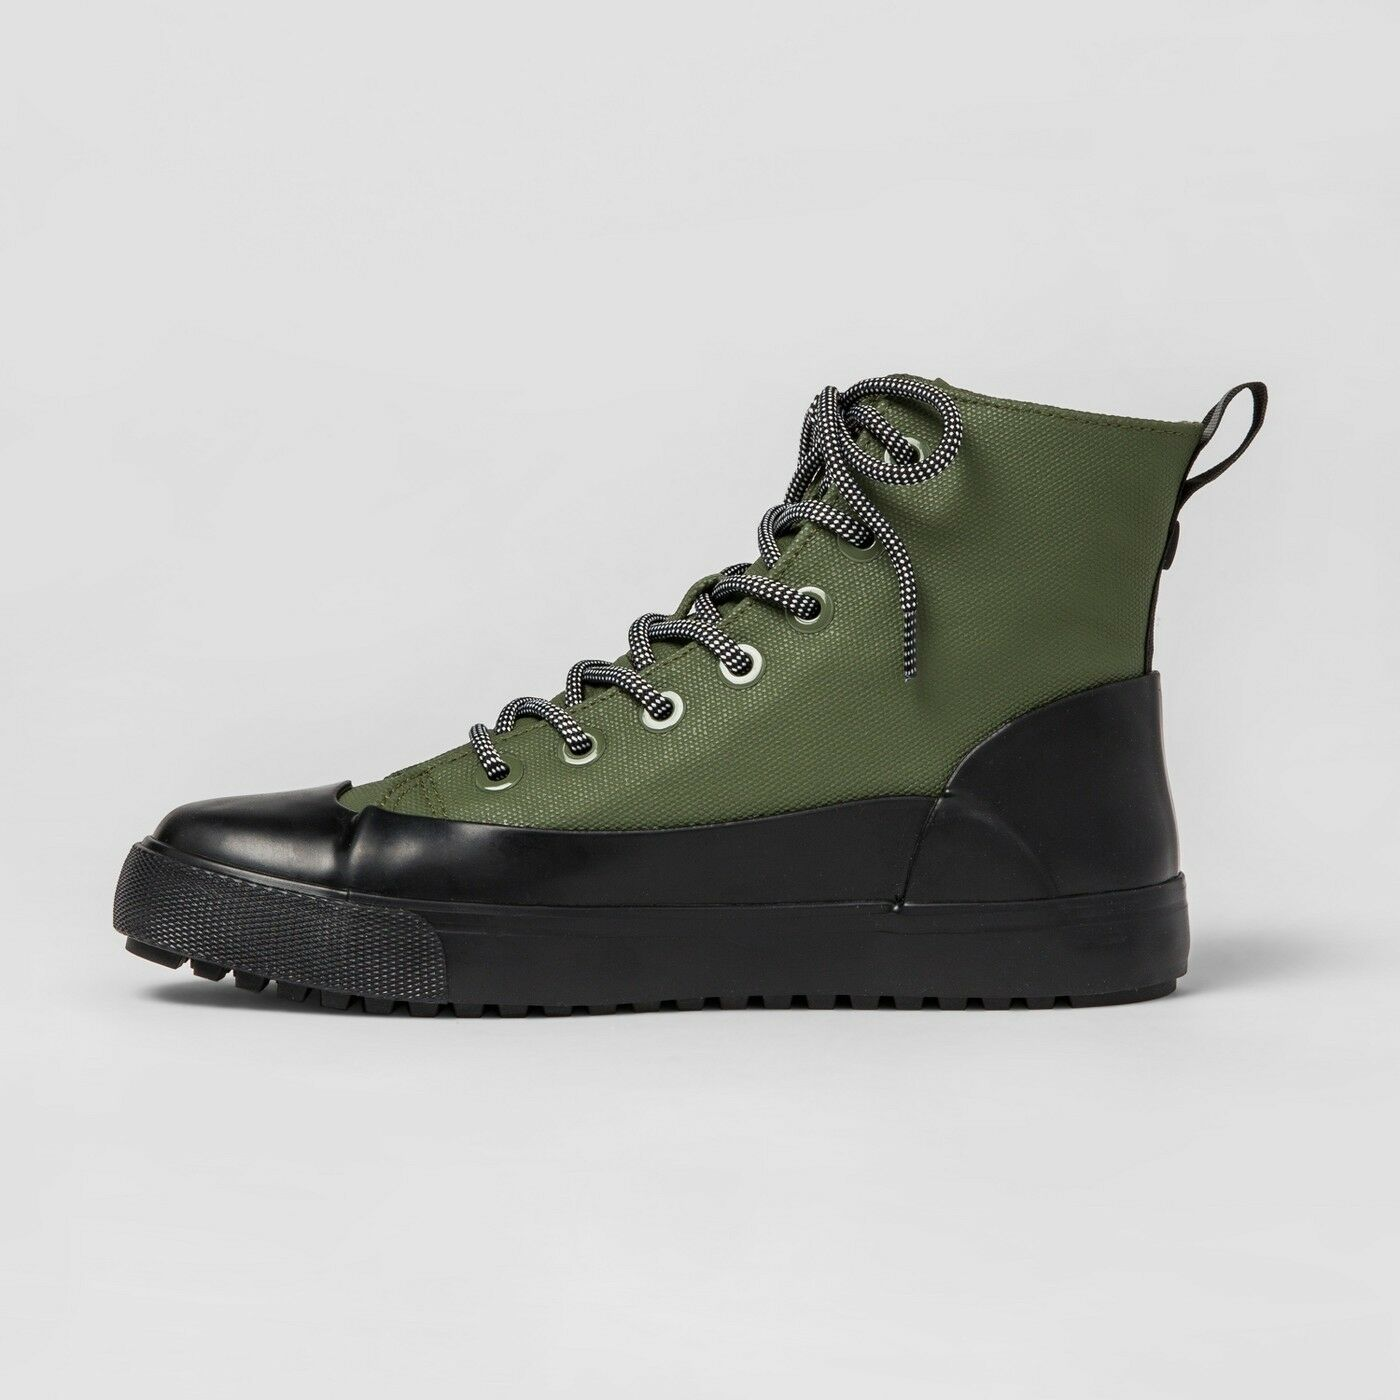 Hunter for Target Adult Unisex Dipped Canvas High Top Sneaker Olive M -13  W -15